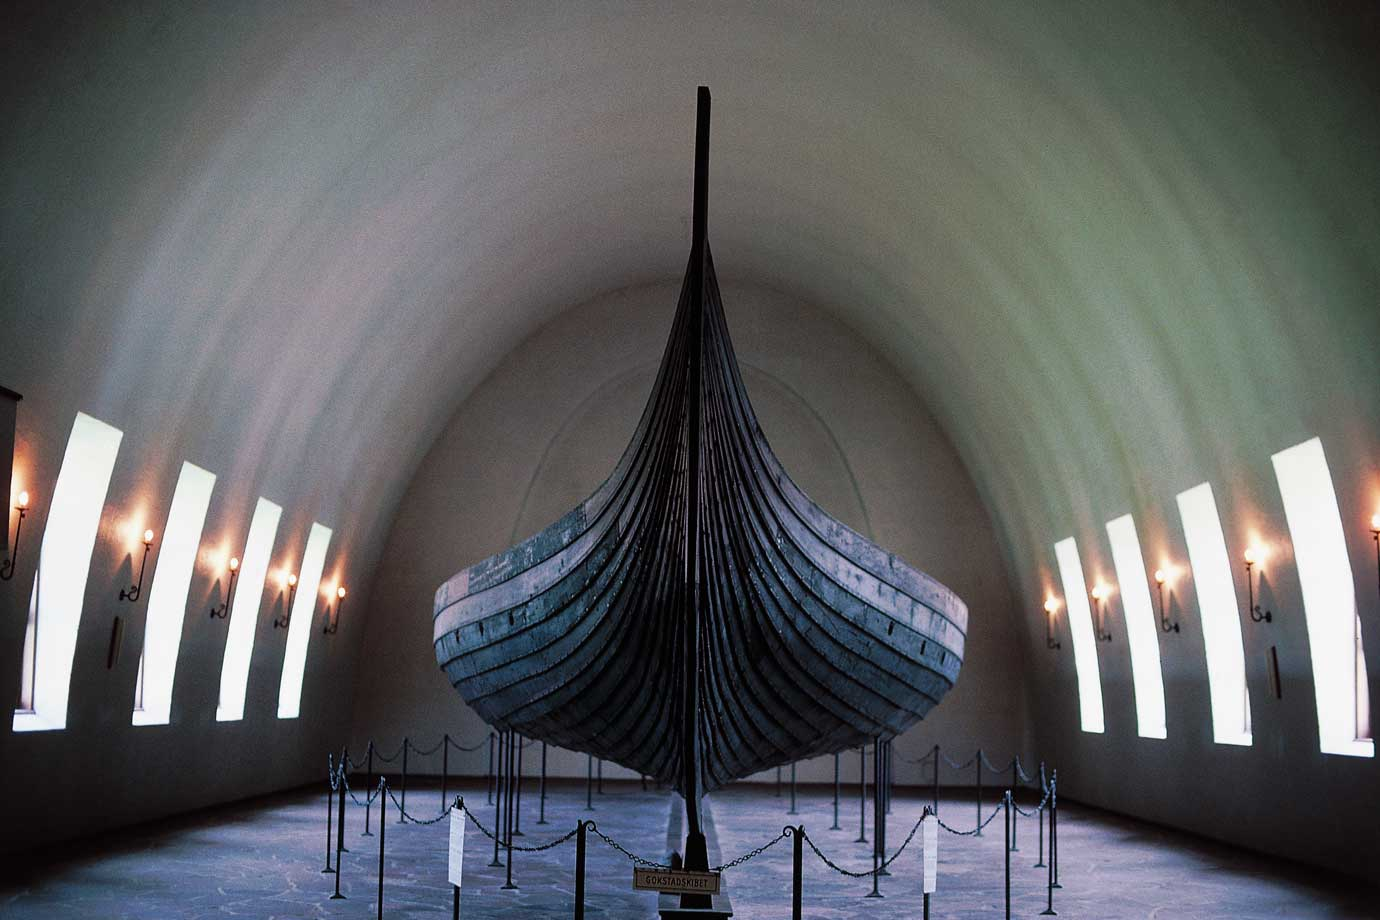 Oslo Travel Guide: Gokstad Viking Ship